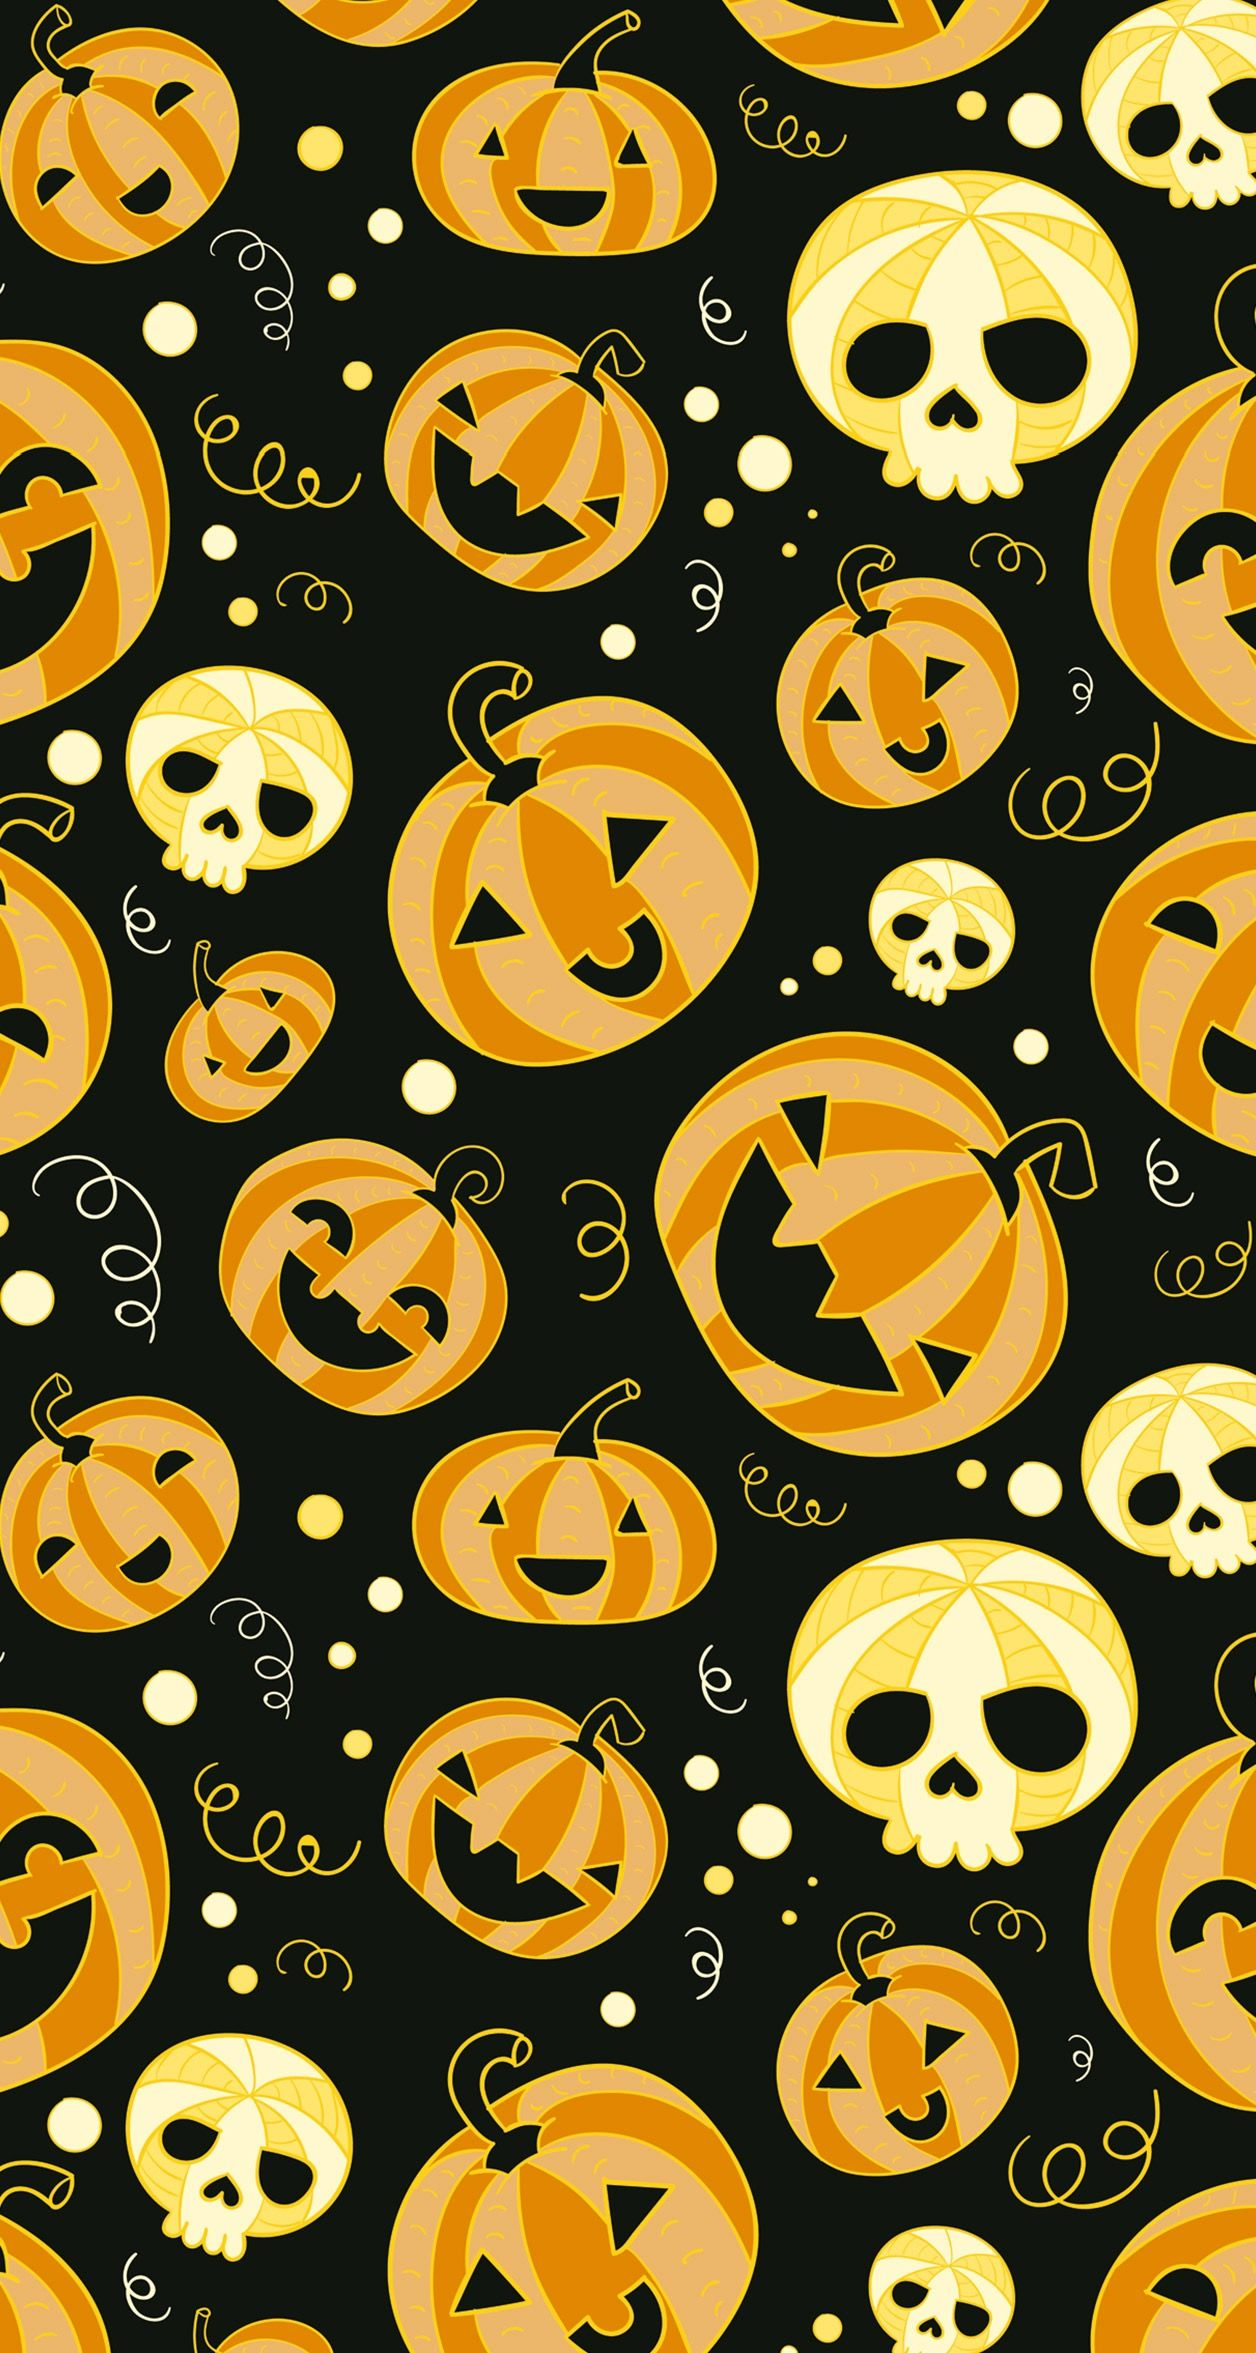 Pin By Lyndsey Crook On Wallpaper Vol 21 Halloween Wallpaper Iphone Pumpkin Wallpaper Halloween Wallpaper